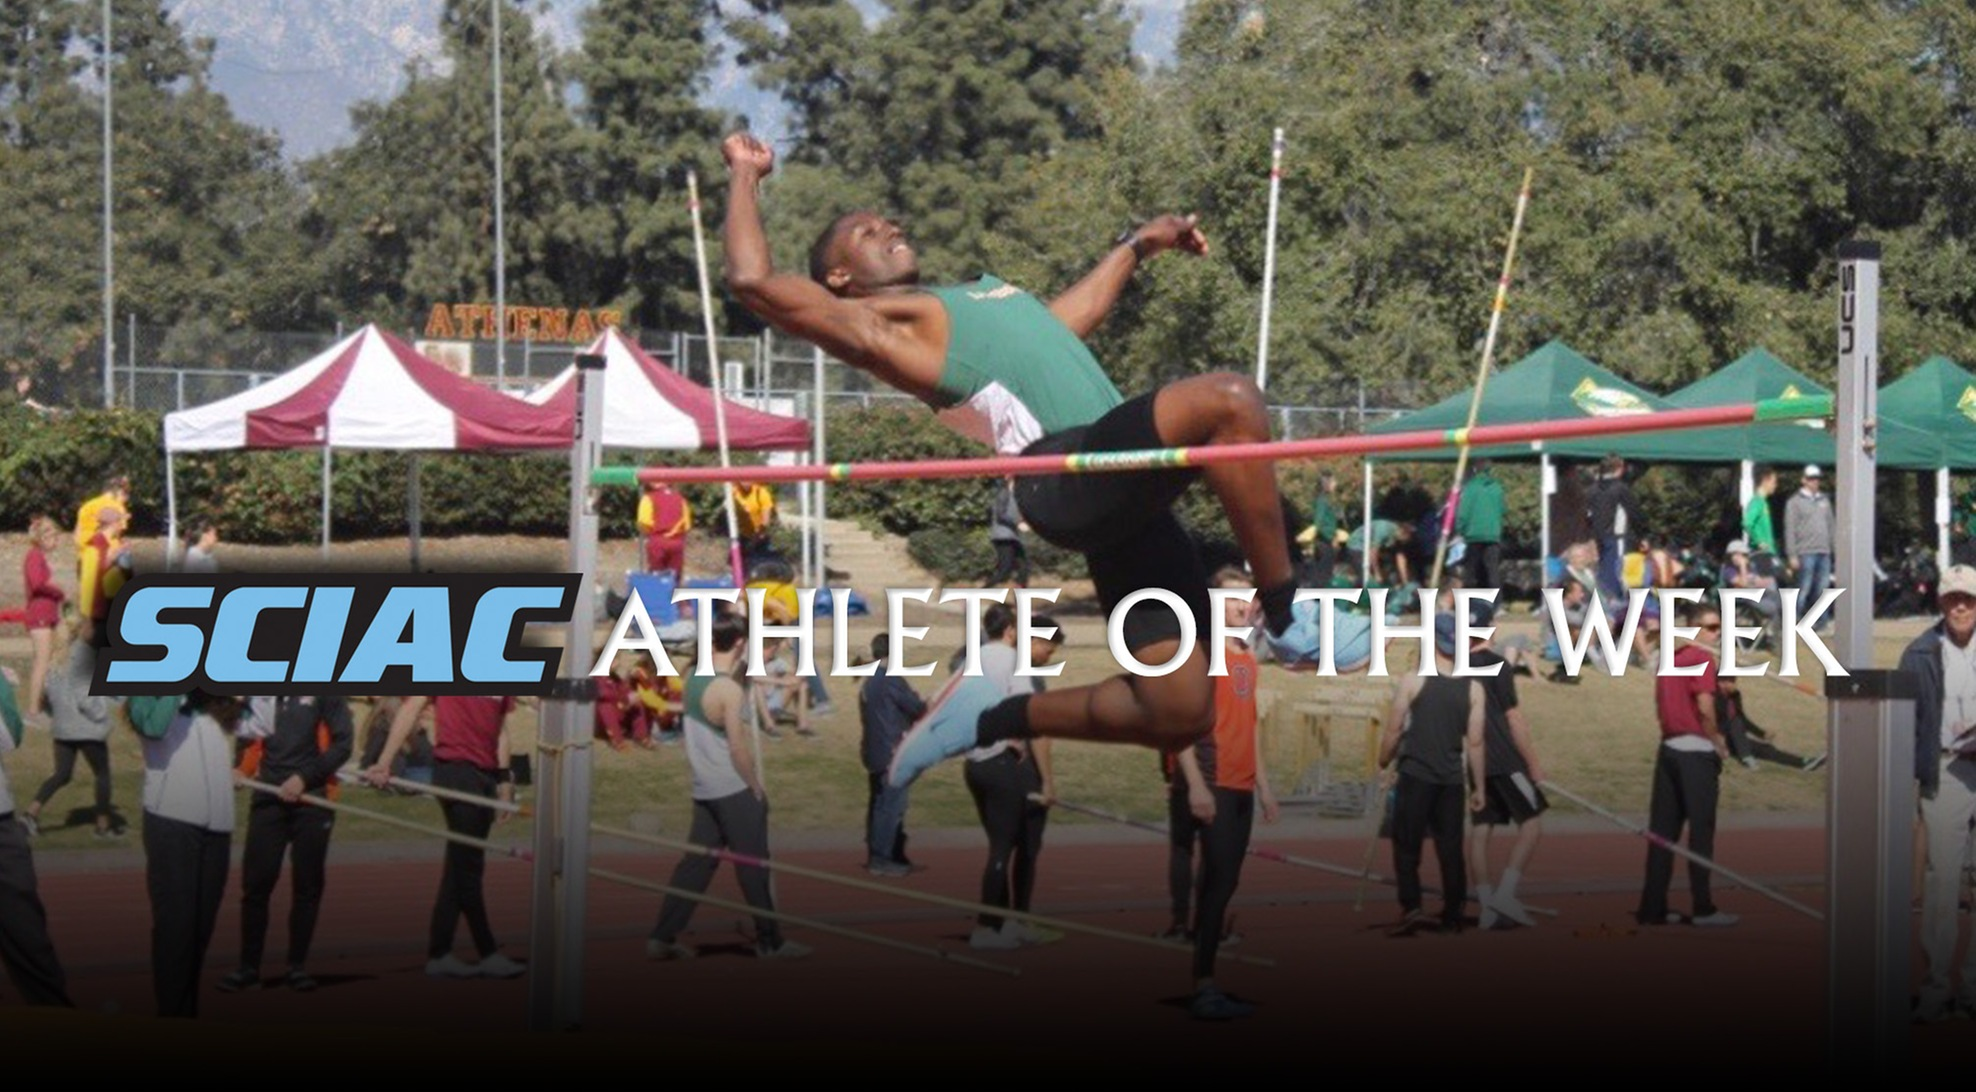 Hamilton named SCIAC Athlete of the Week